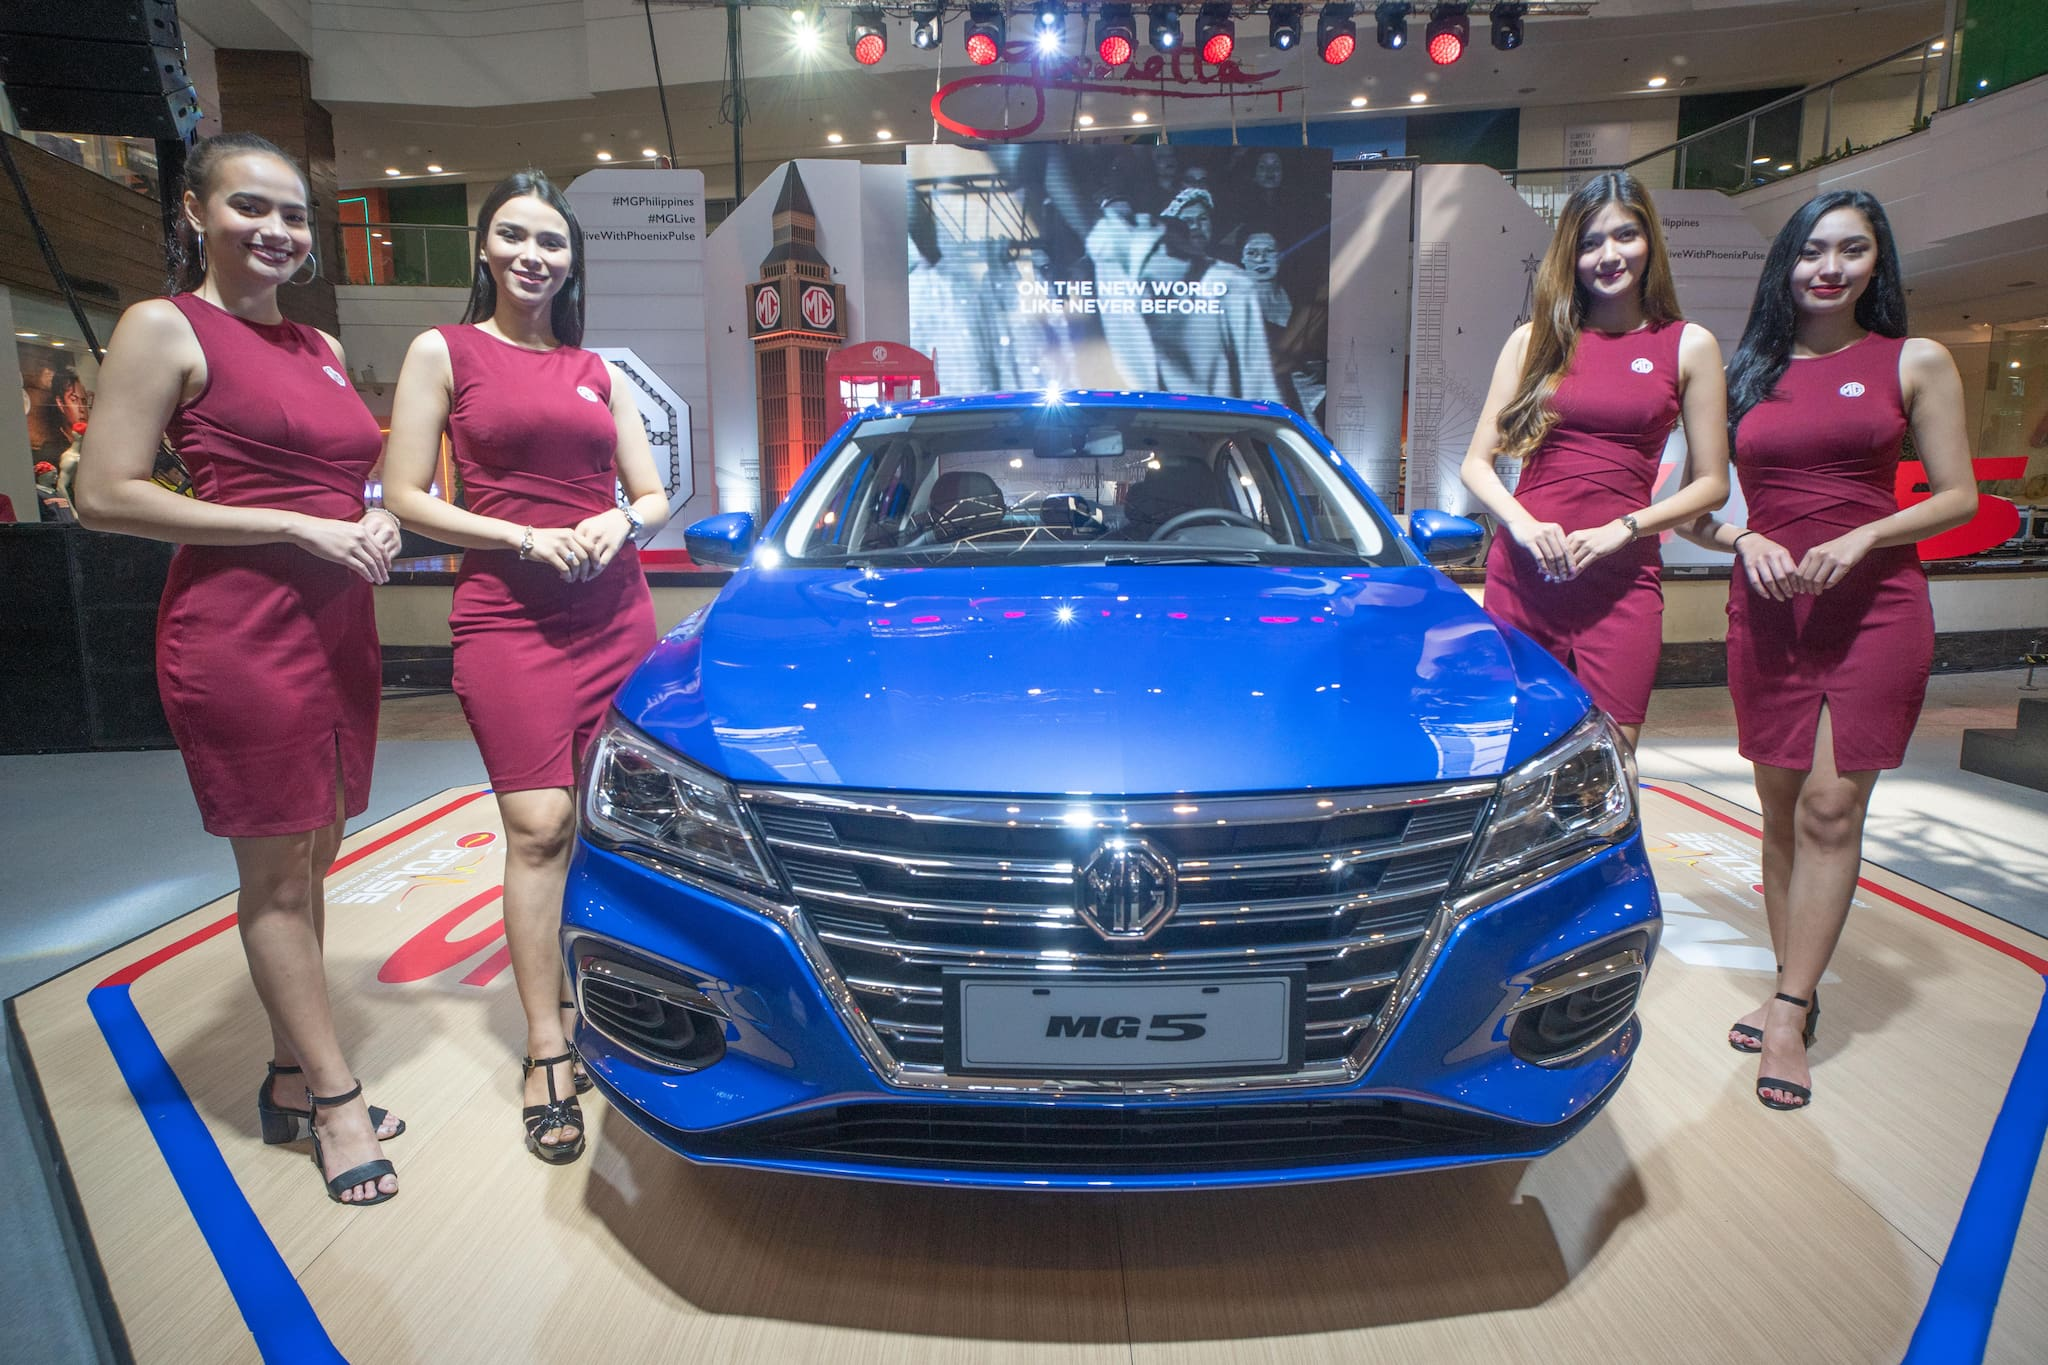 2020 MG 5 Sedan Makes Metro Manila Debut with Special MG Live! Concert